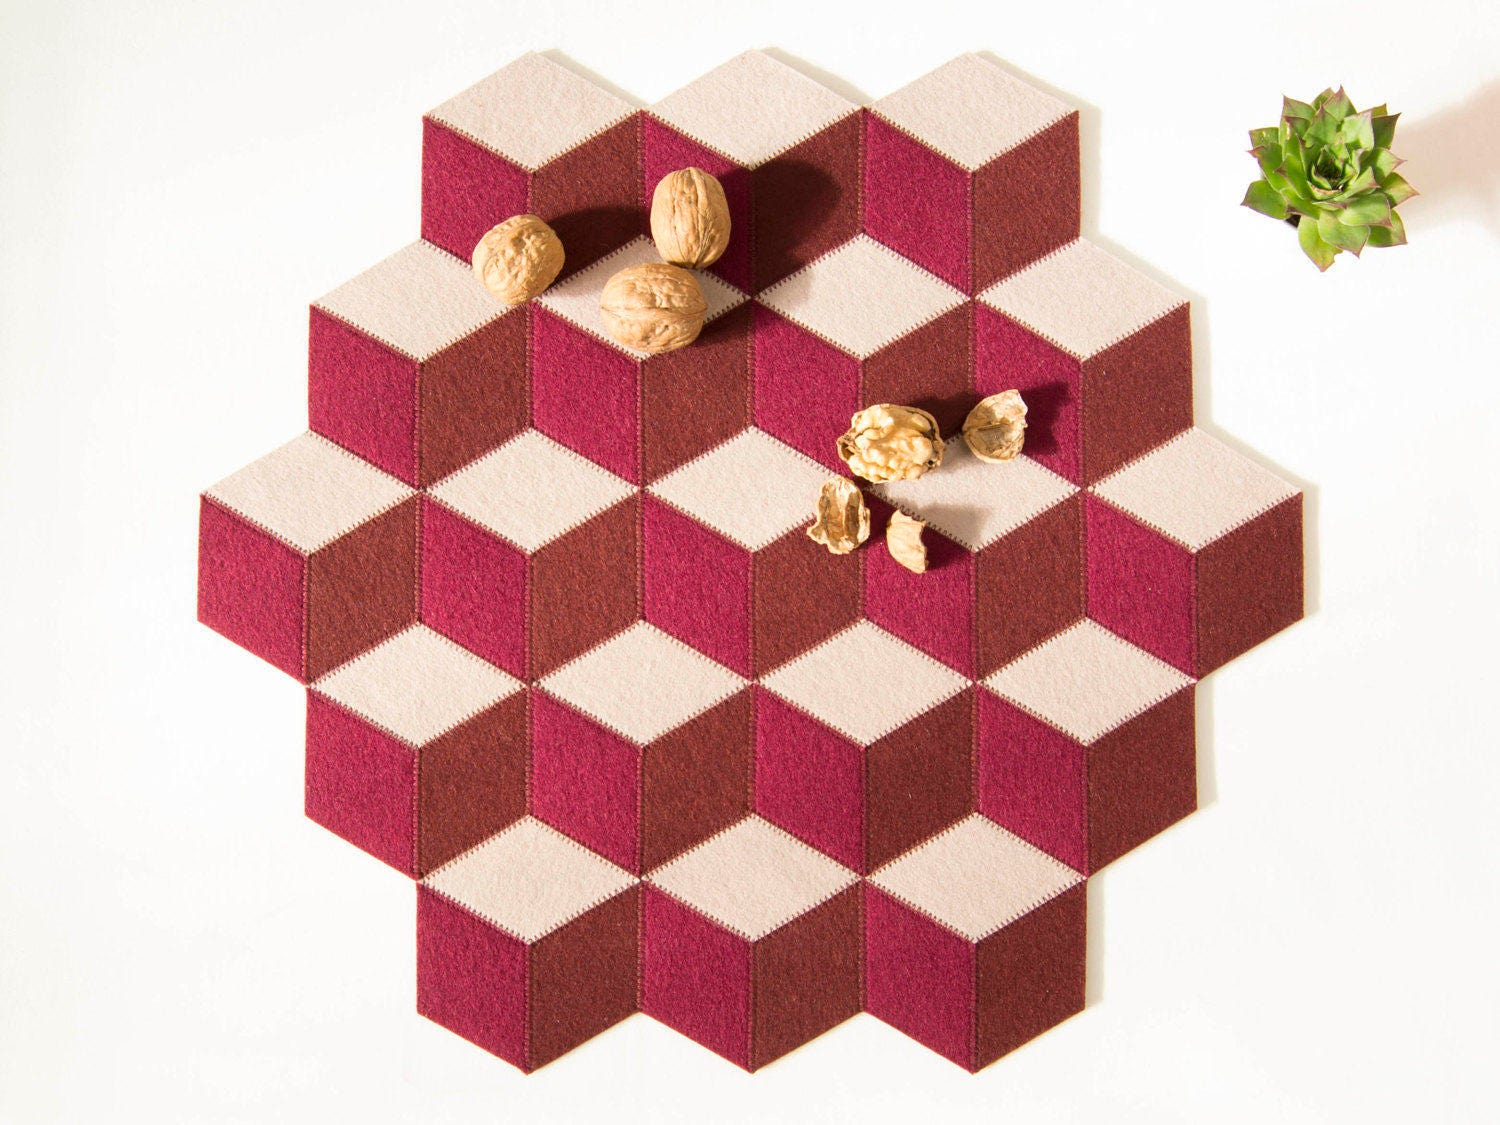 Handmade table mats design - Large Table Mat Wool Felt Burgundy And Almond Geometric Mat Stylish Table Mat Handmade Made In Italy